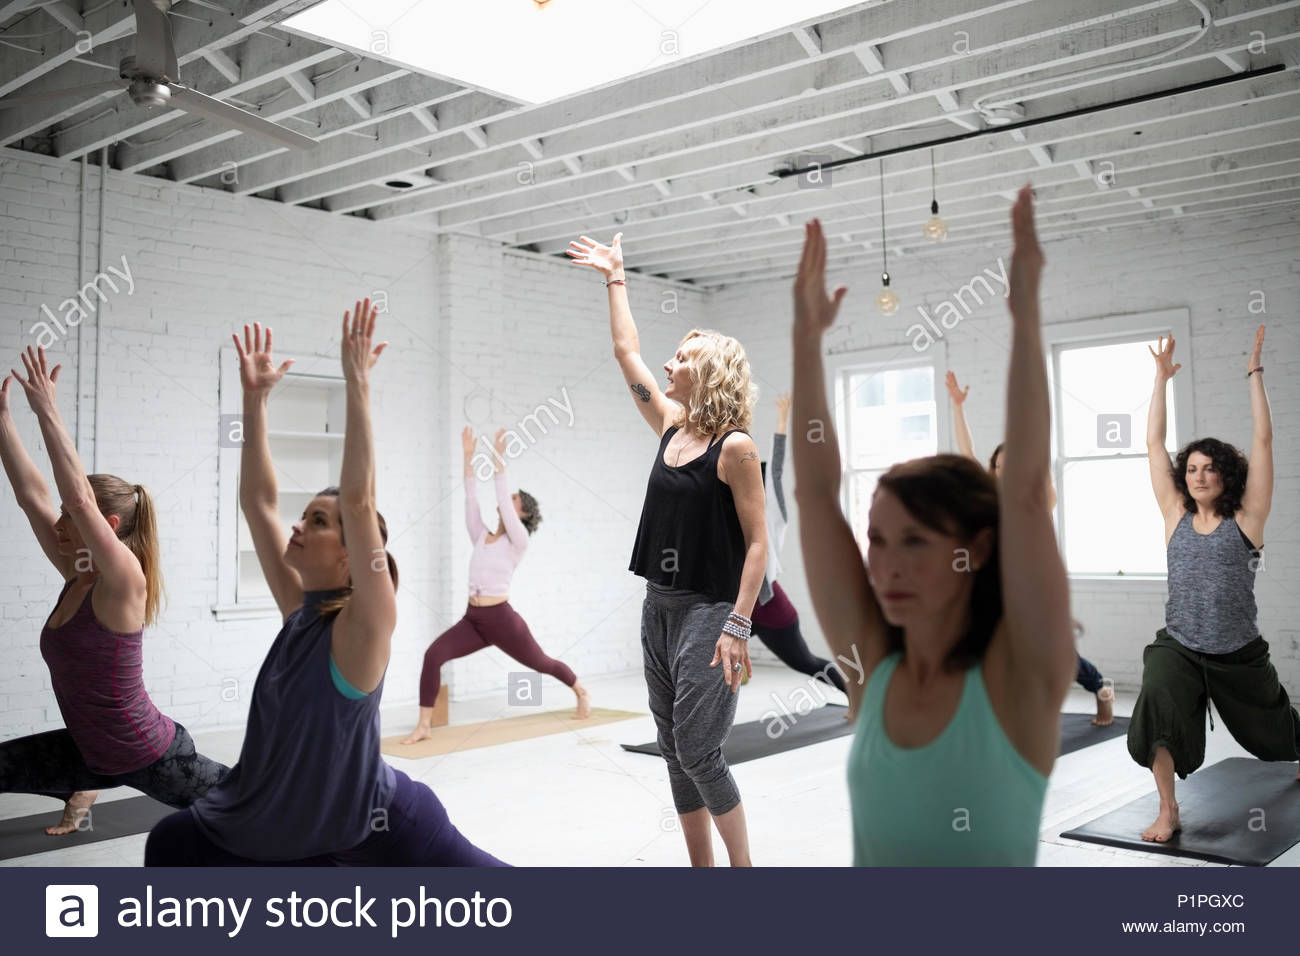 Yoga instructor guiding women practicing warrior one pose in yoga class - Stock Image